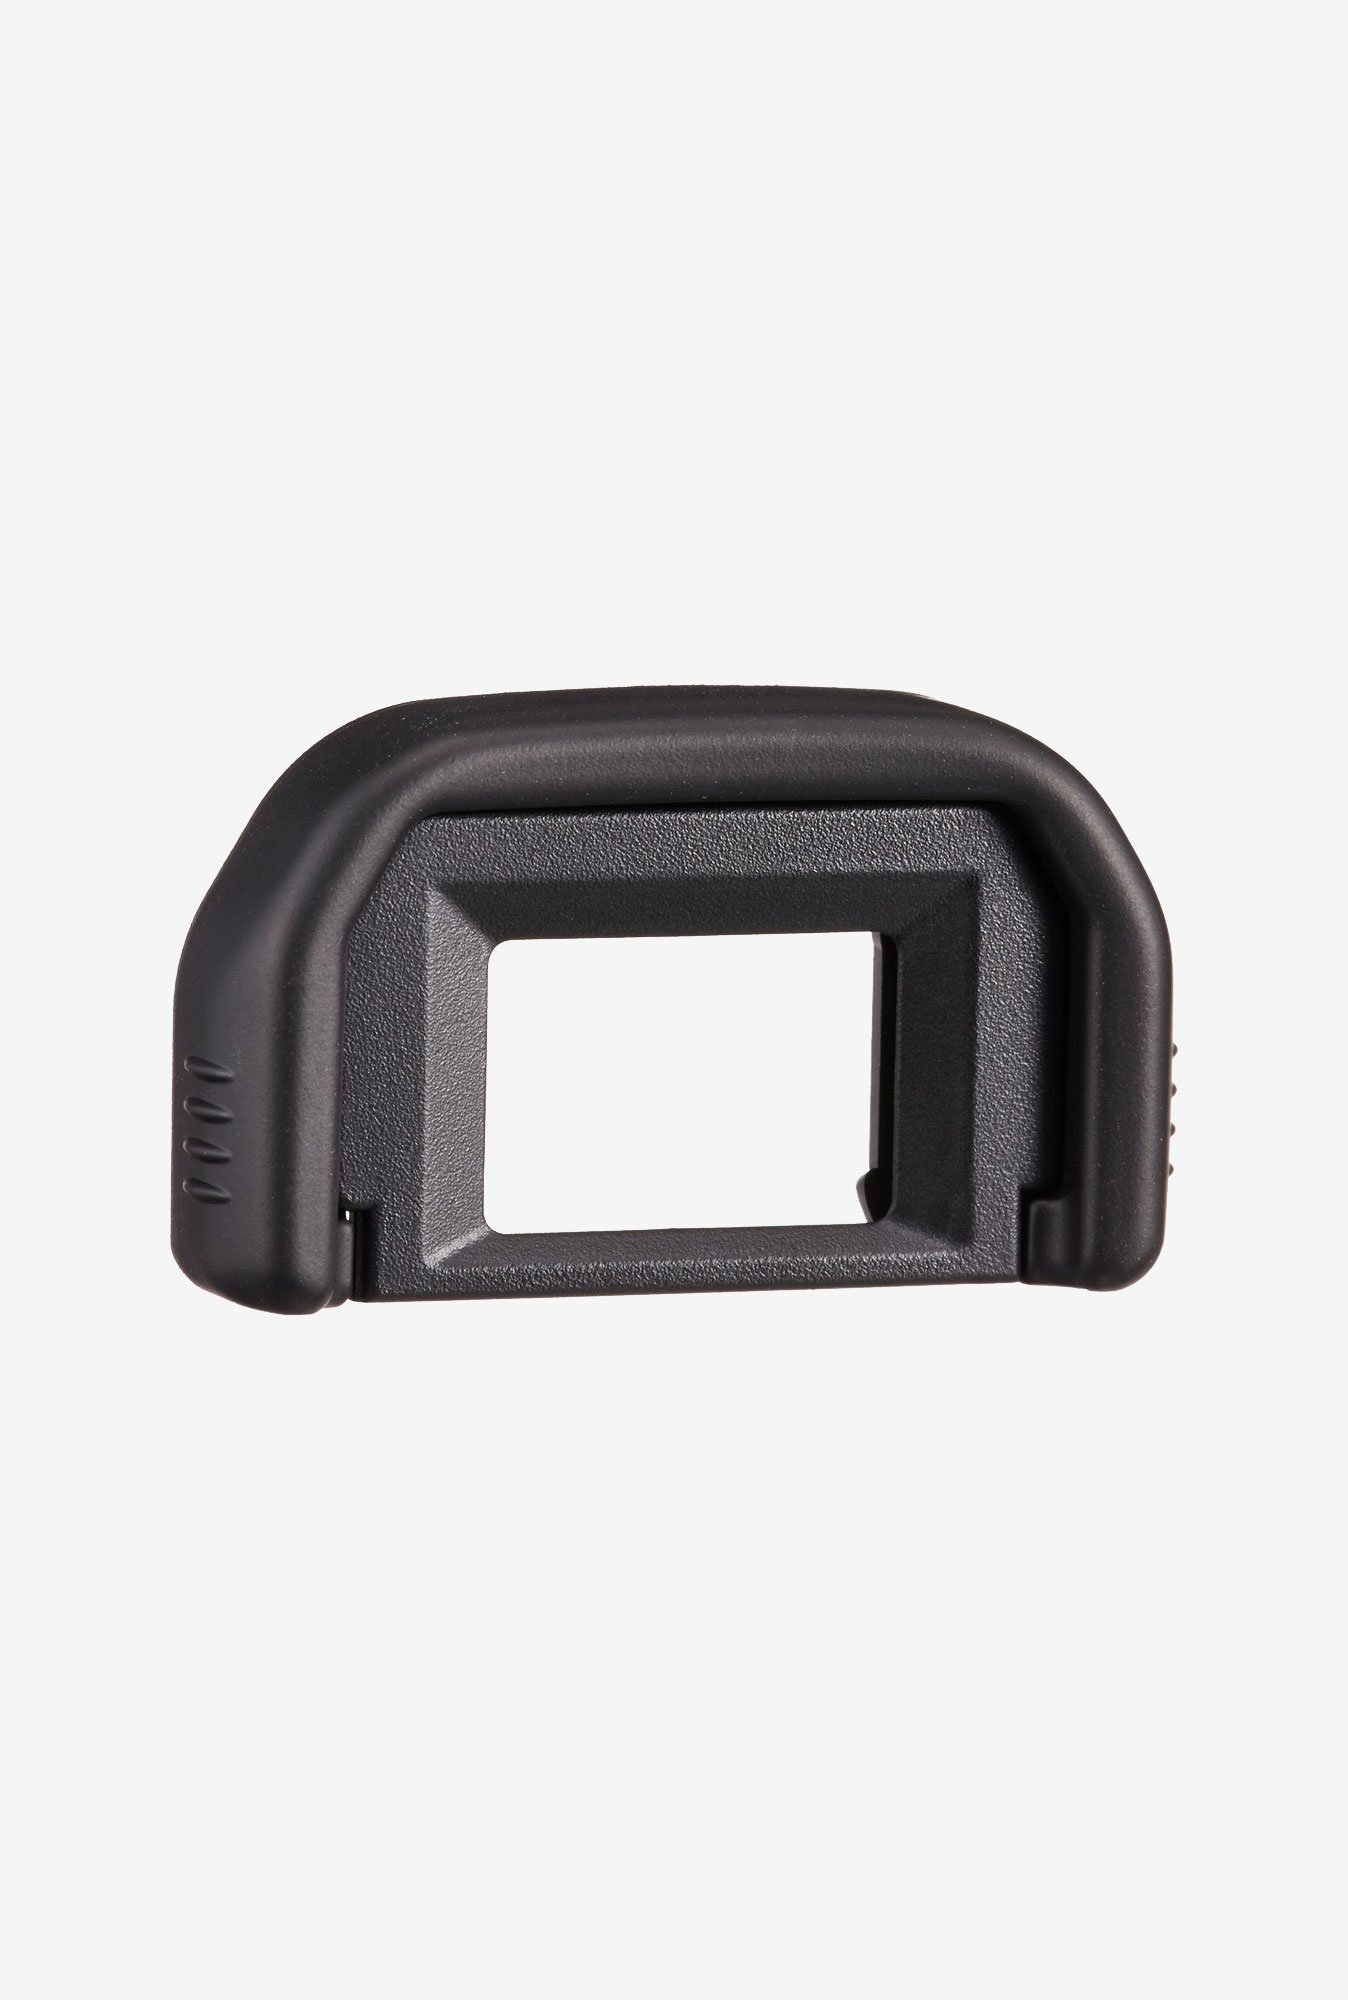 Play X Store Eyepiece/Eyecup for Canon (Black)